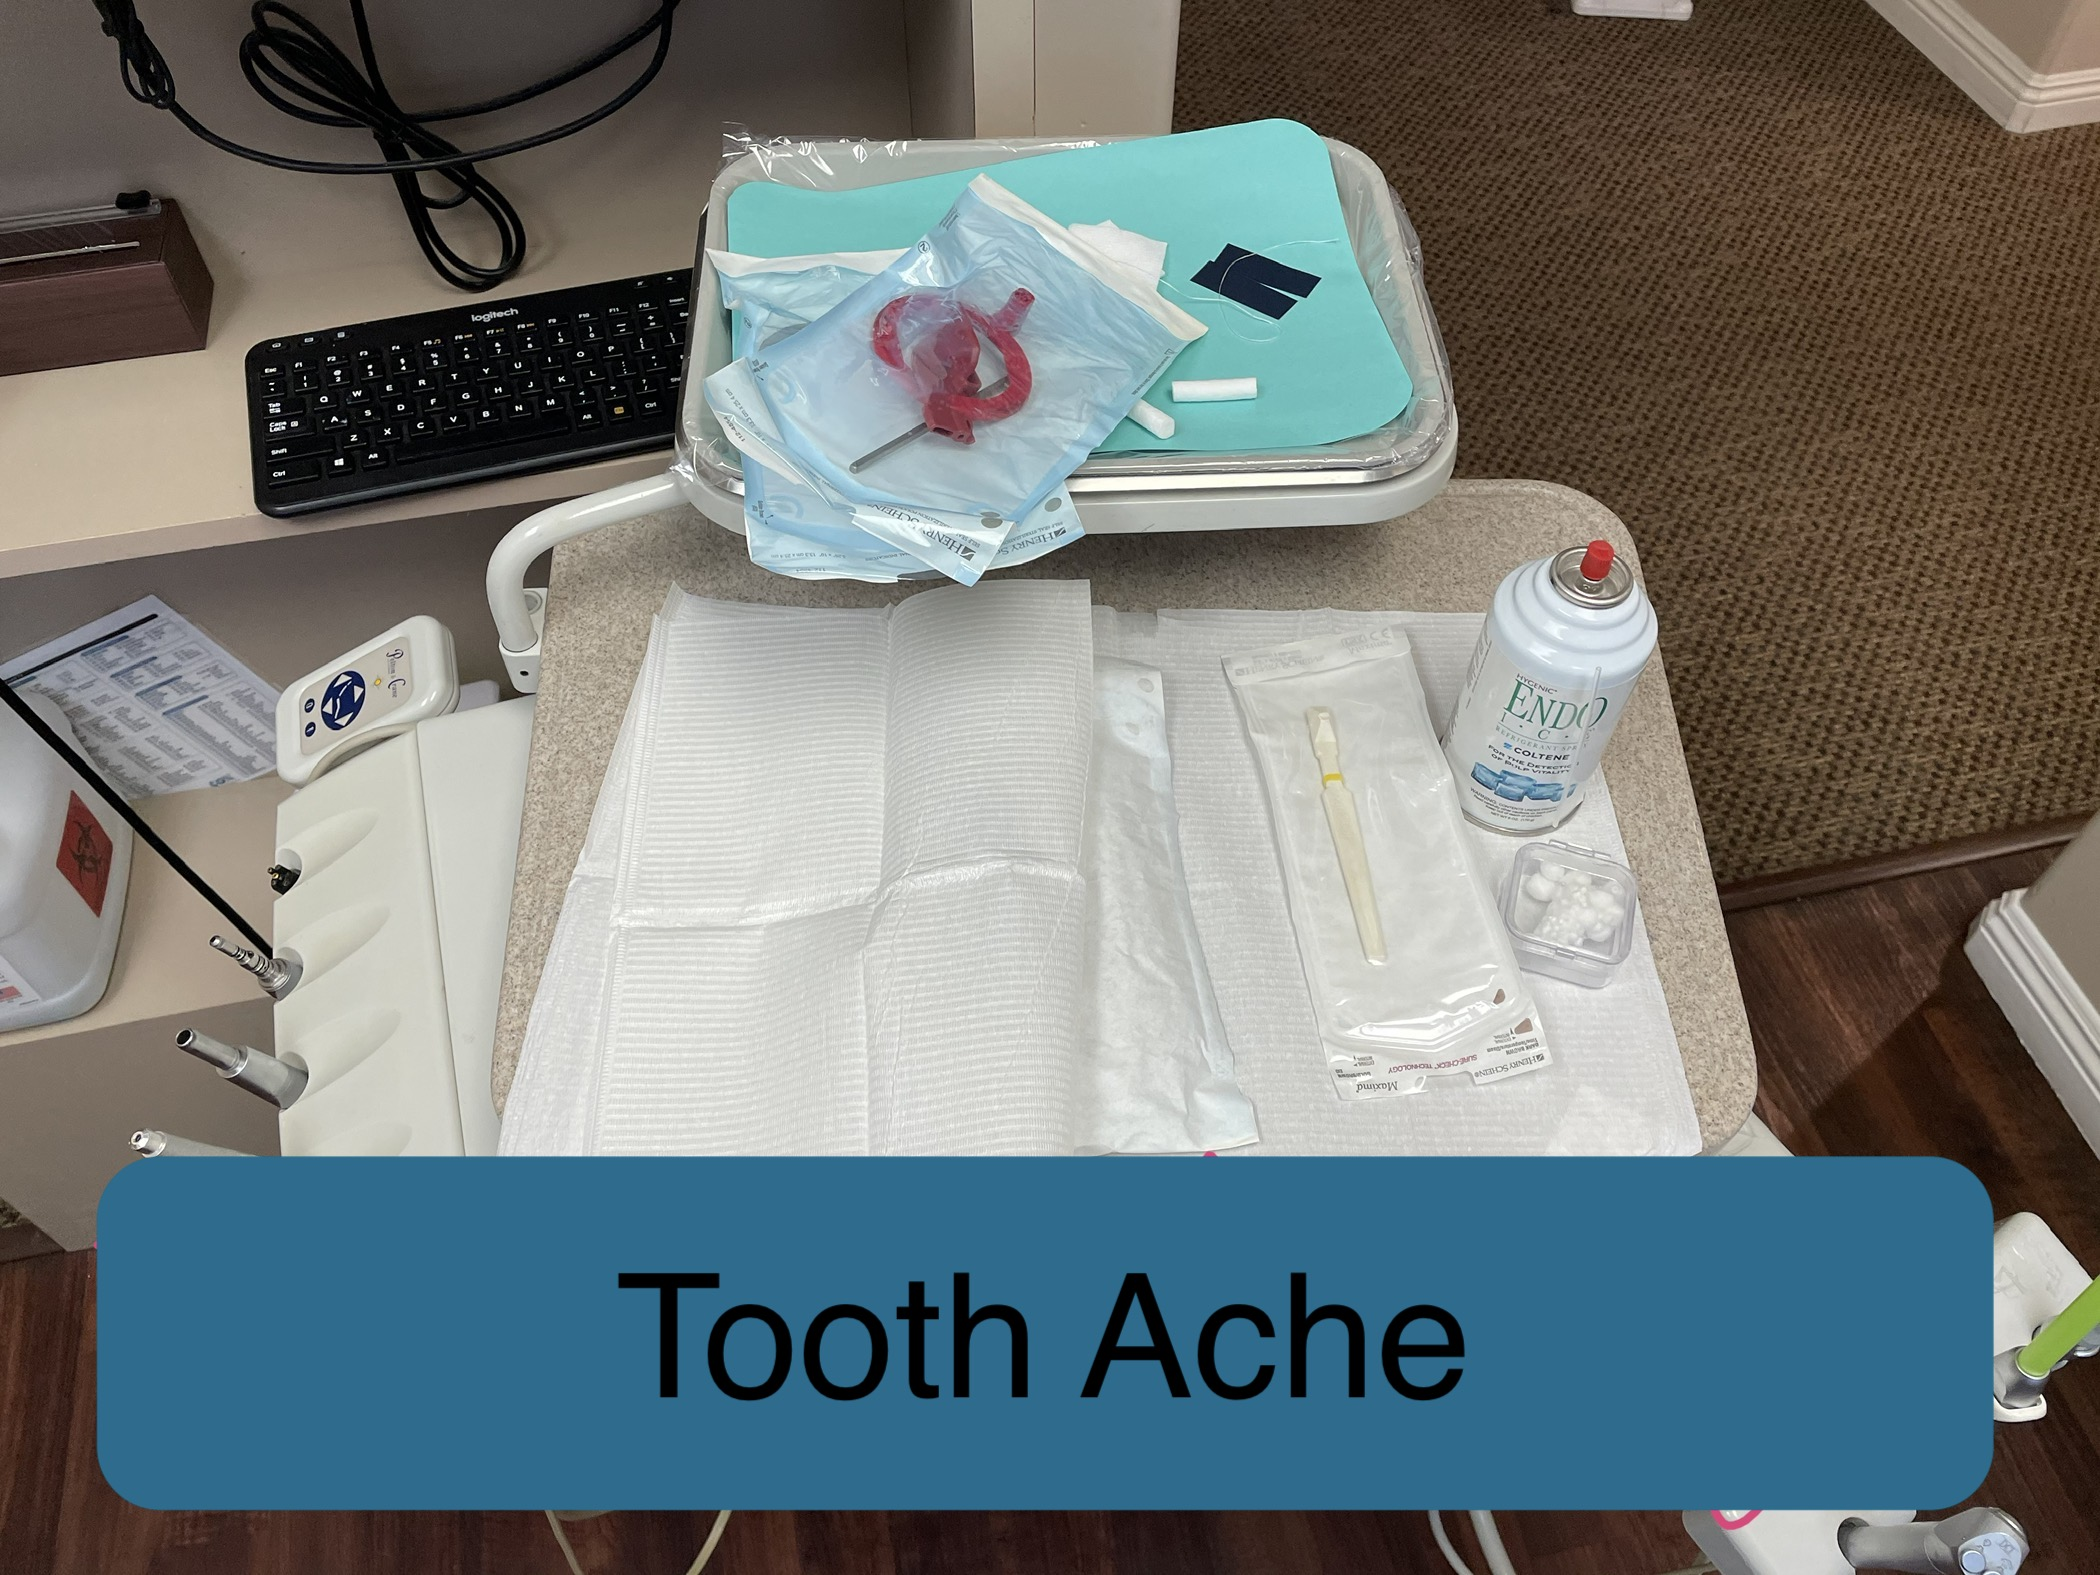 Tooth Ache Sample